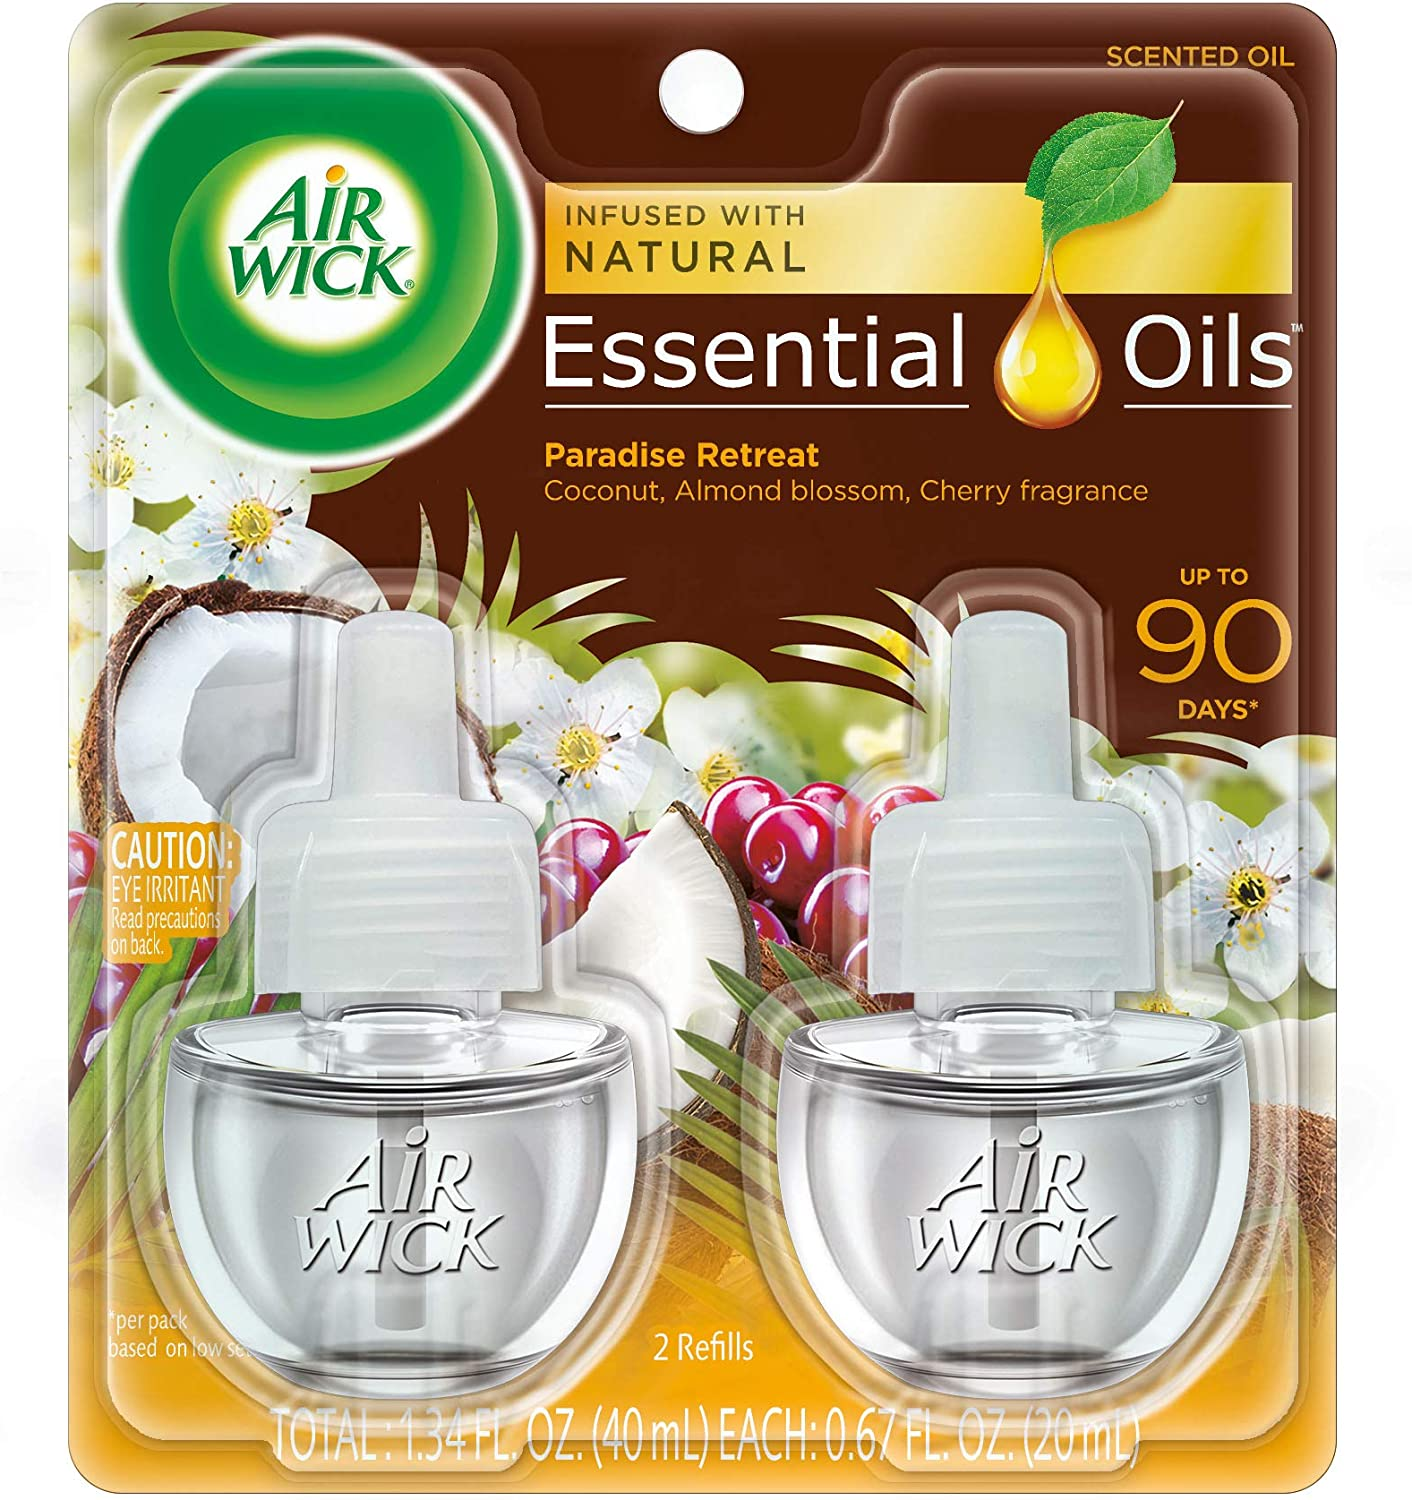 Air Wick Scented Oil Twin Refill Life Scents Paradise Retreat (Coconut/Almond Blossom/Cherry) 2 ea (Pack of 2)